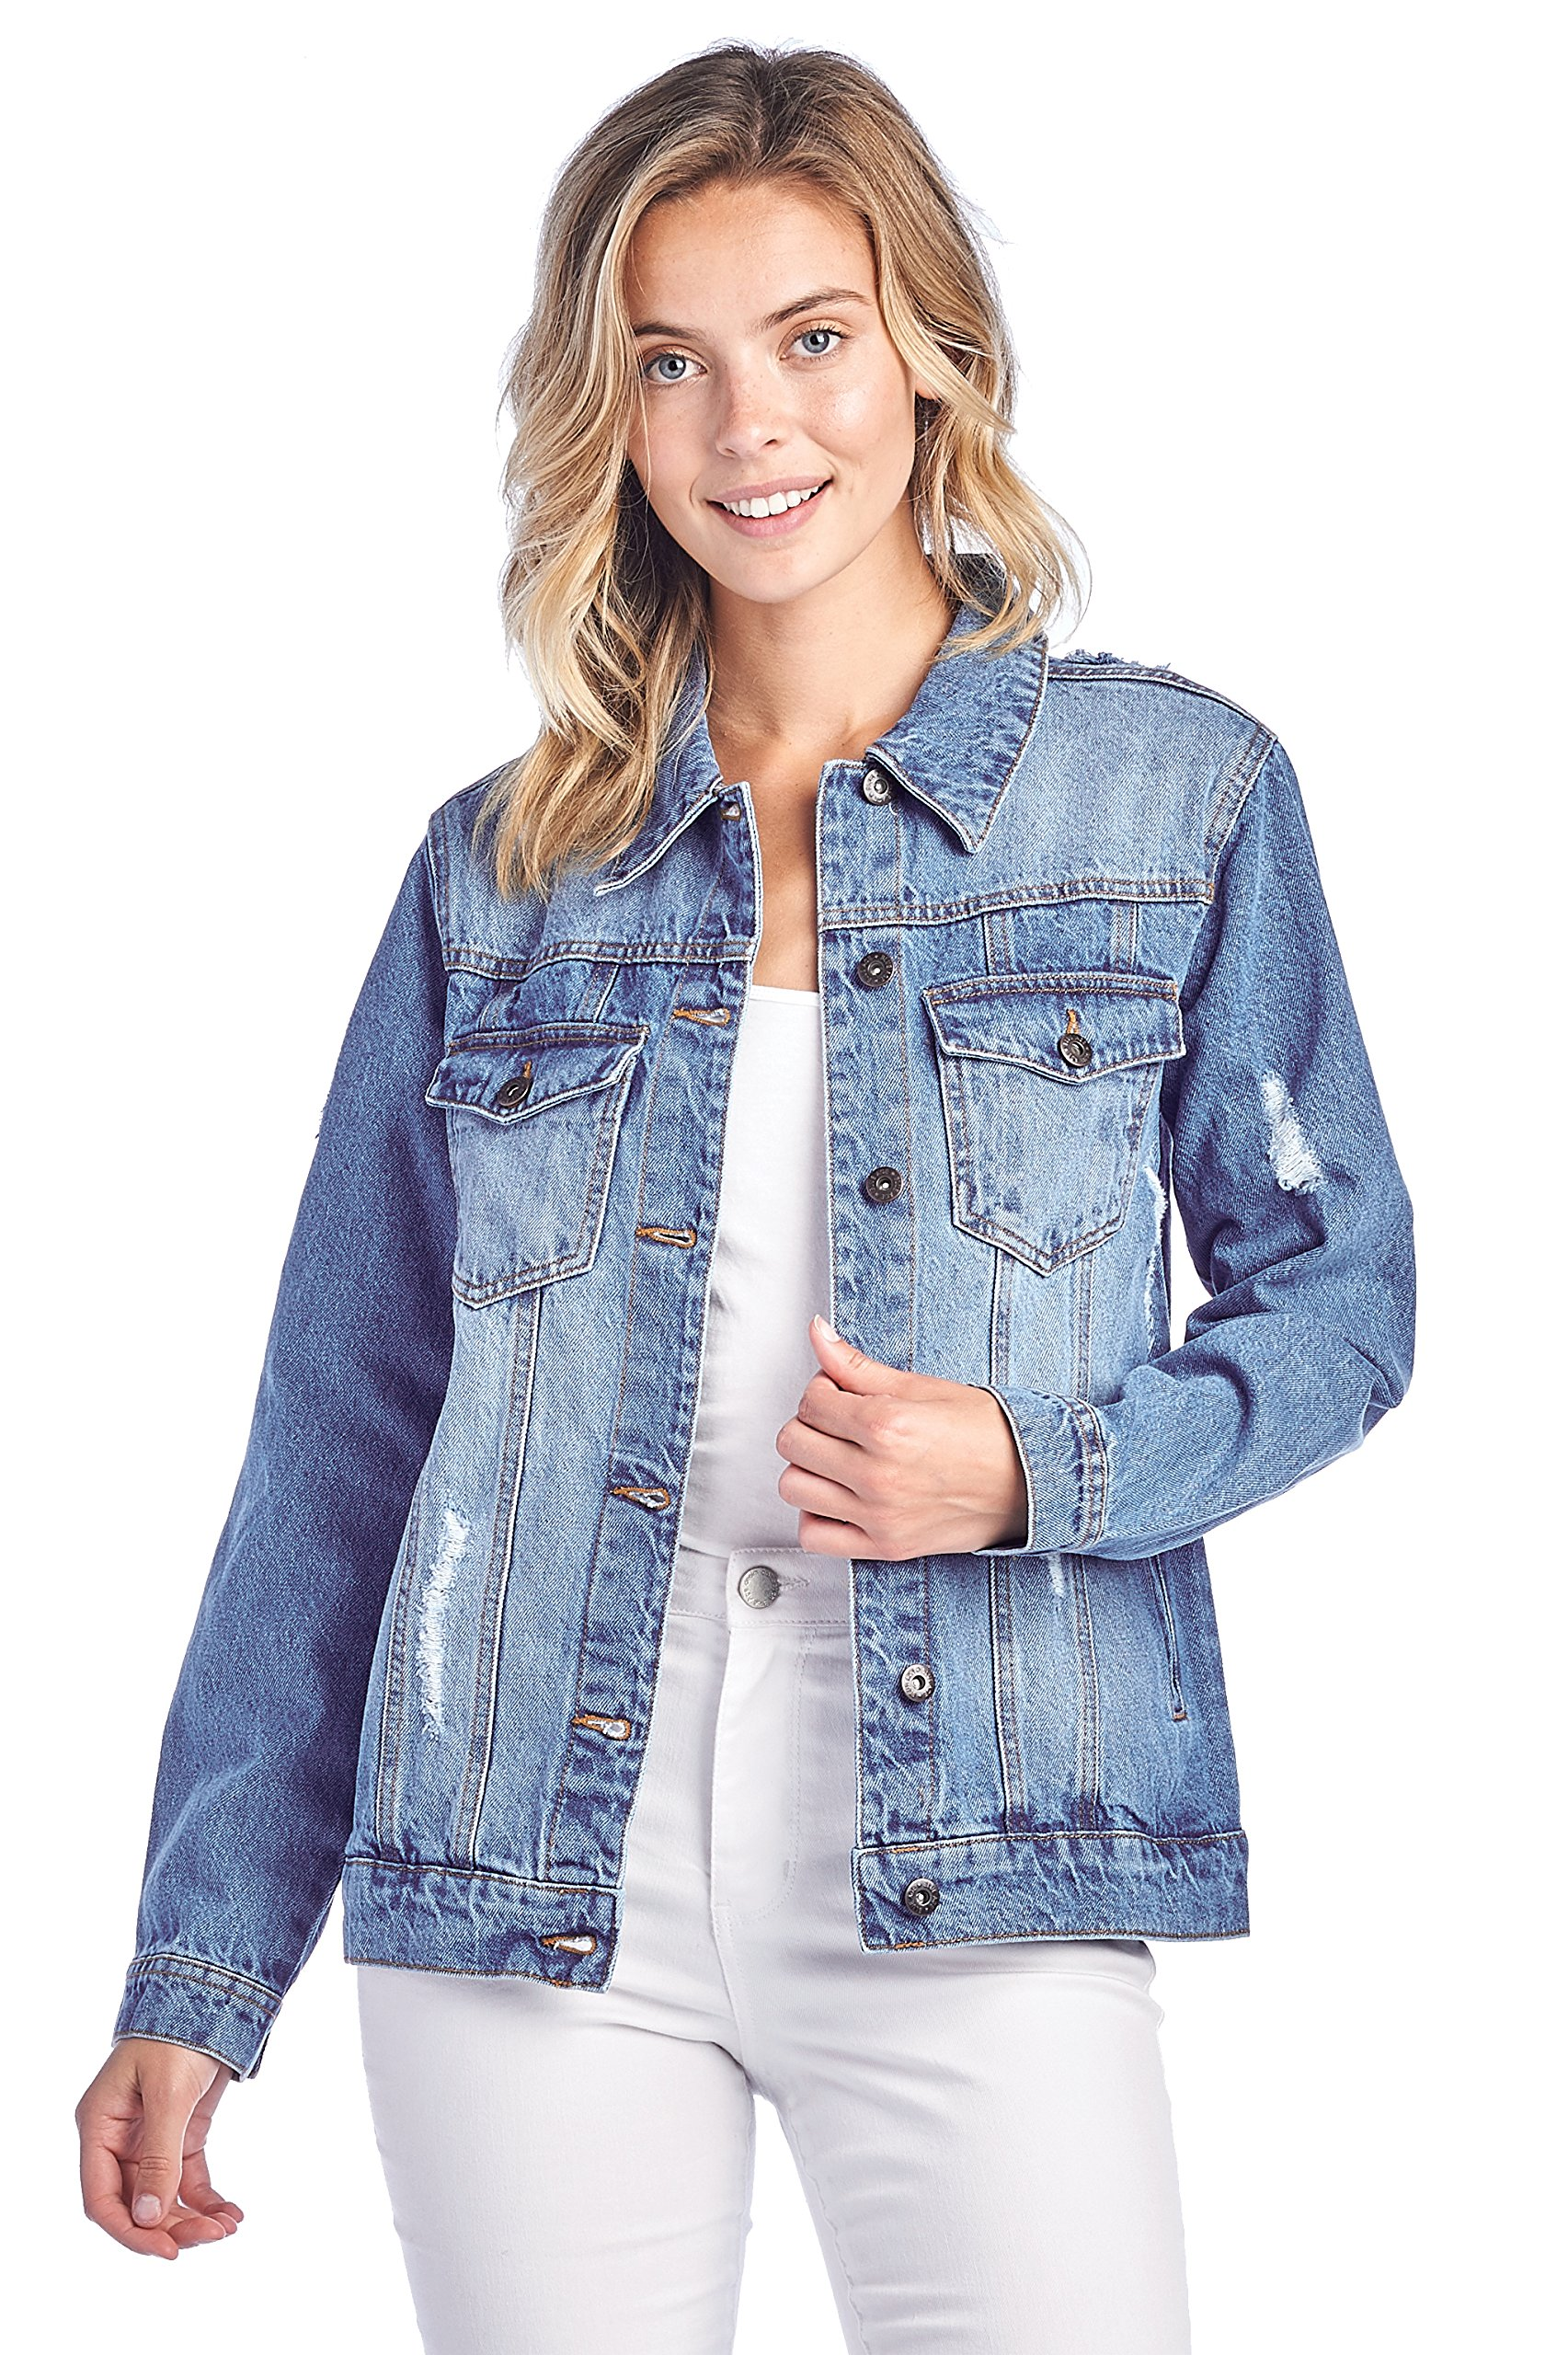 ICONICC Women's Denim Distressed Ripped Jean Jacket (JK4016_LT_M)